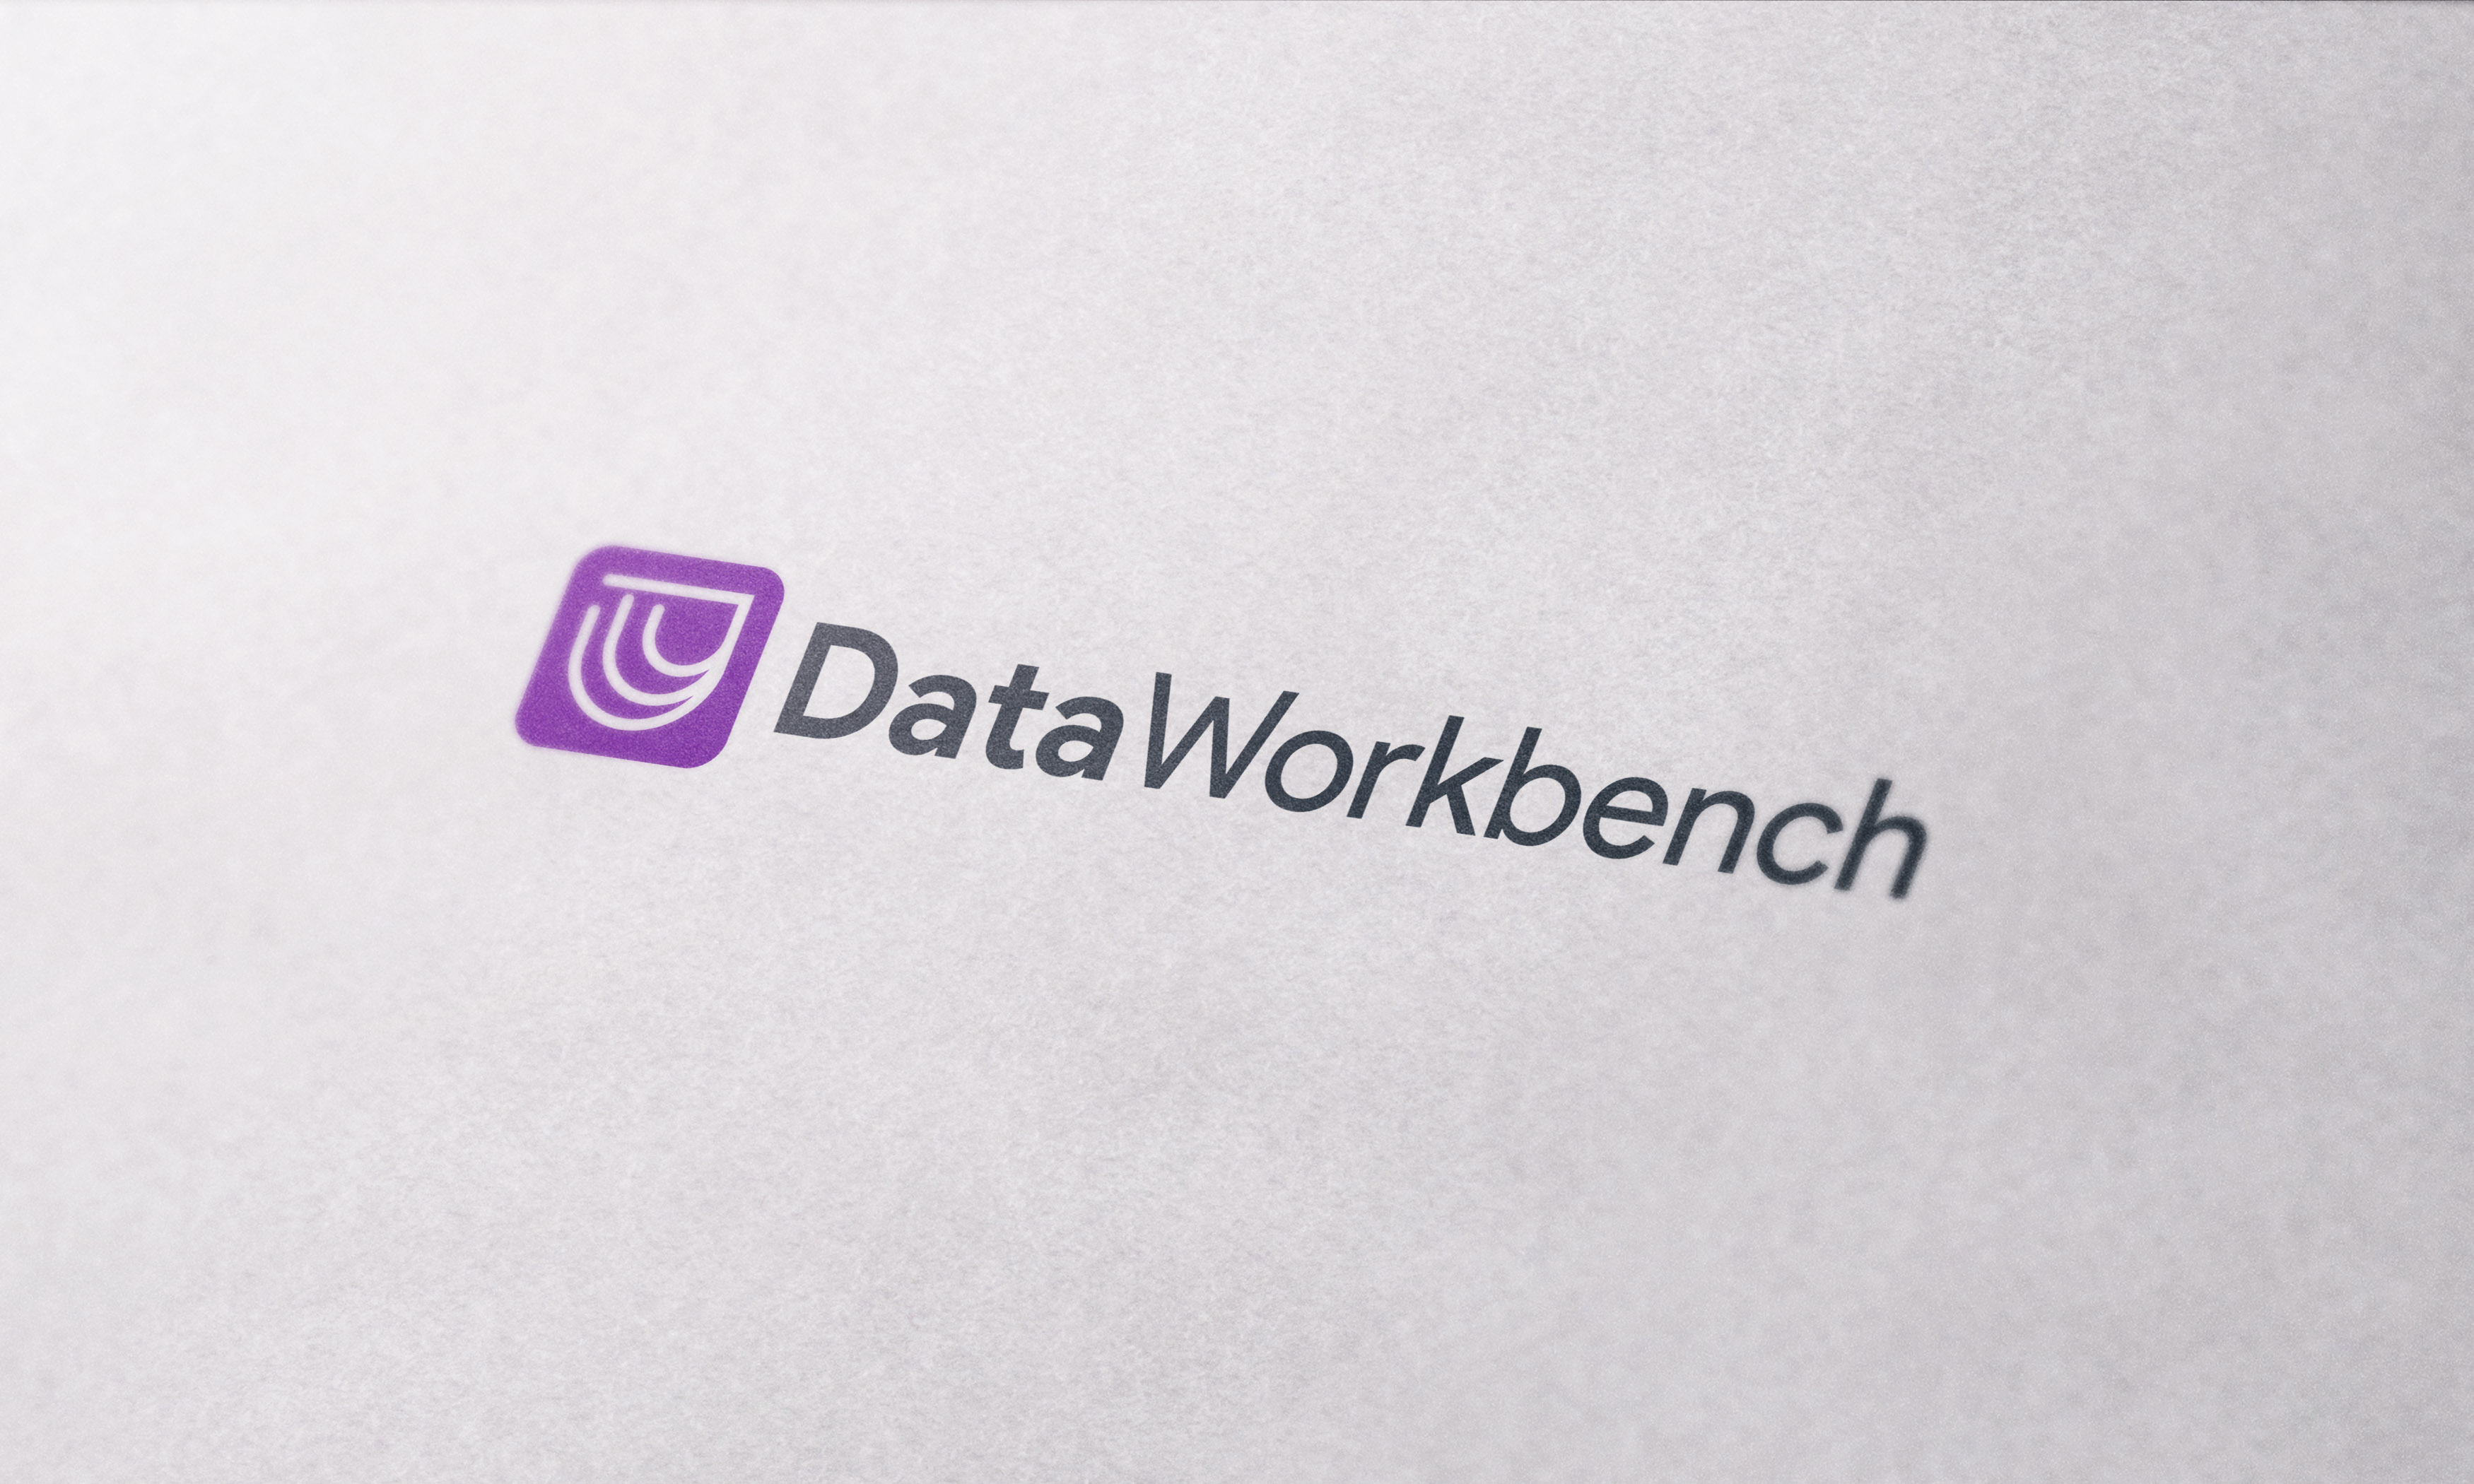 Why We Built the DataWorkbench